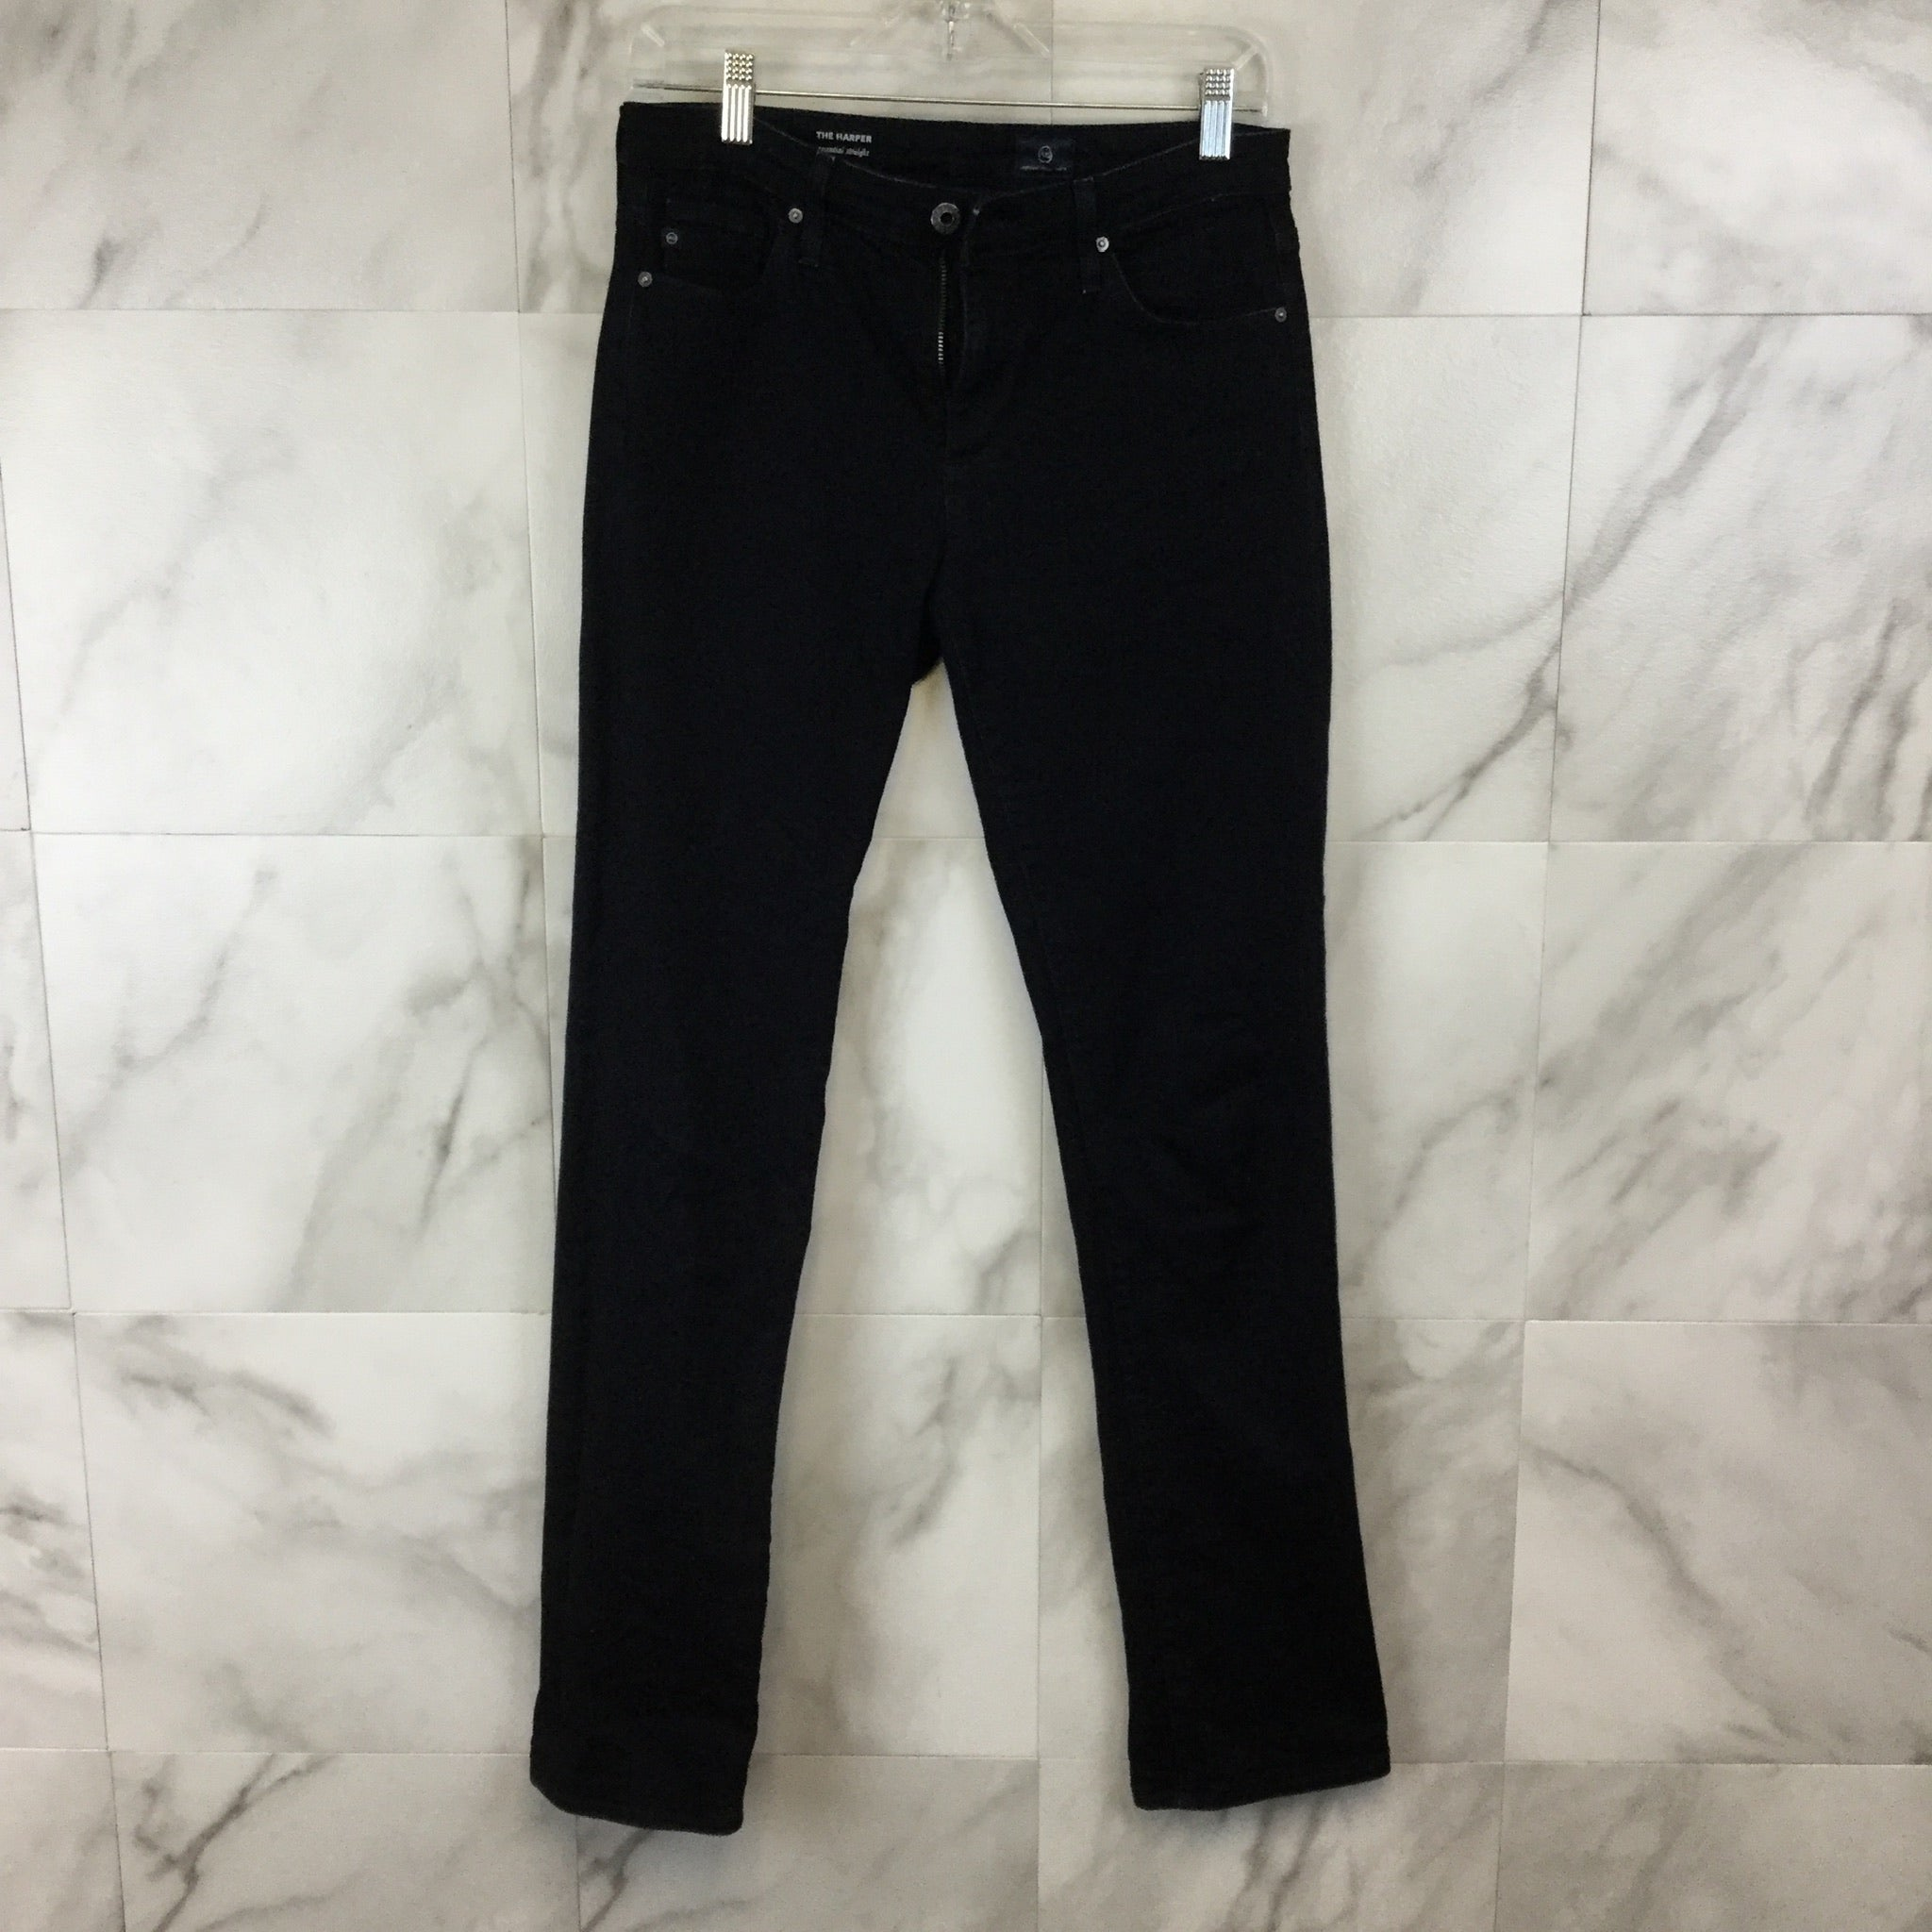 "Adriano Goldschmied ""The Harper"" Essential Straight Leg Jeans - Size 4"